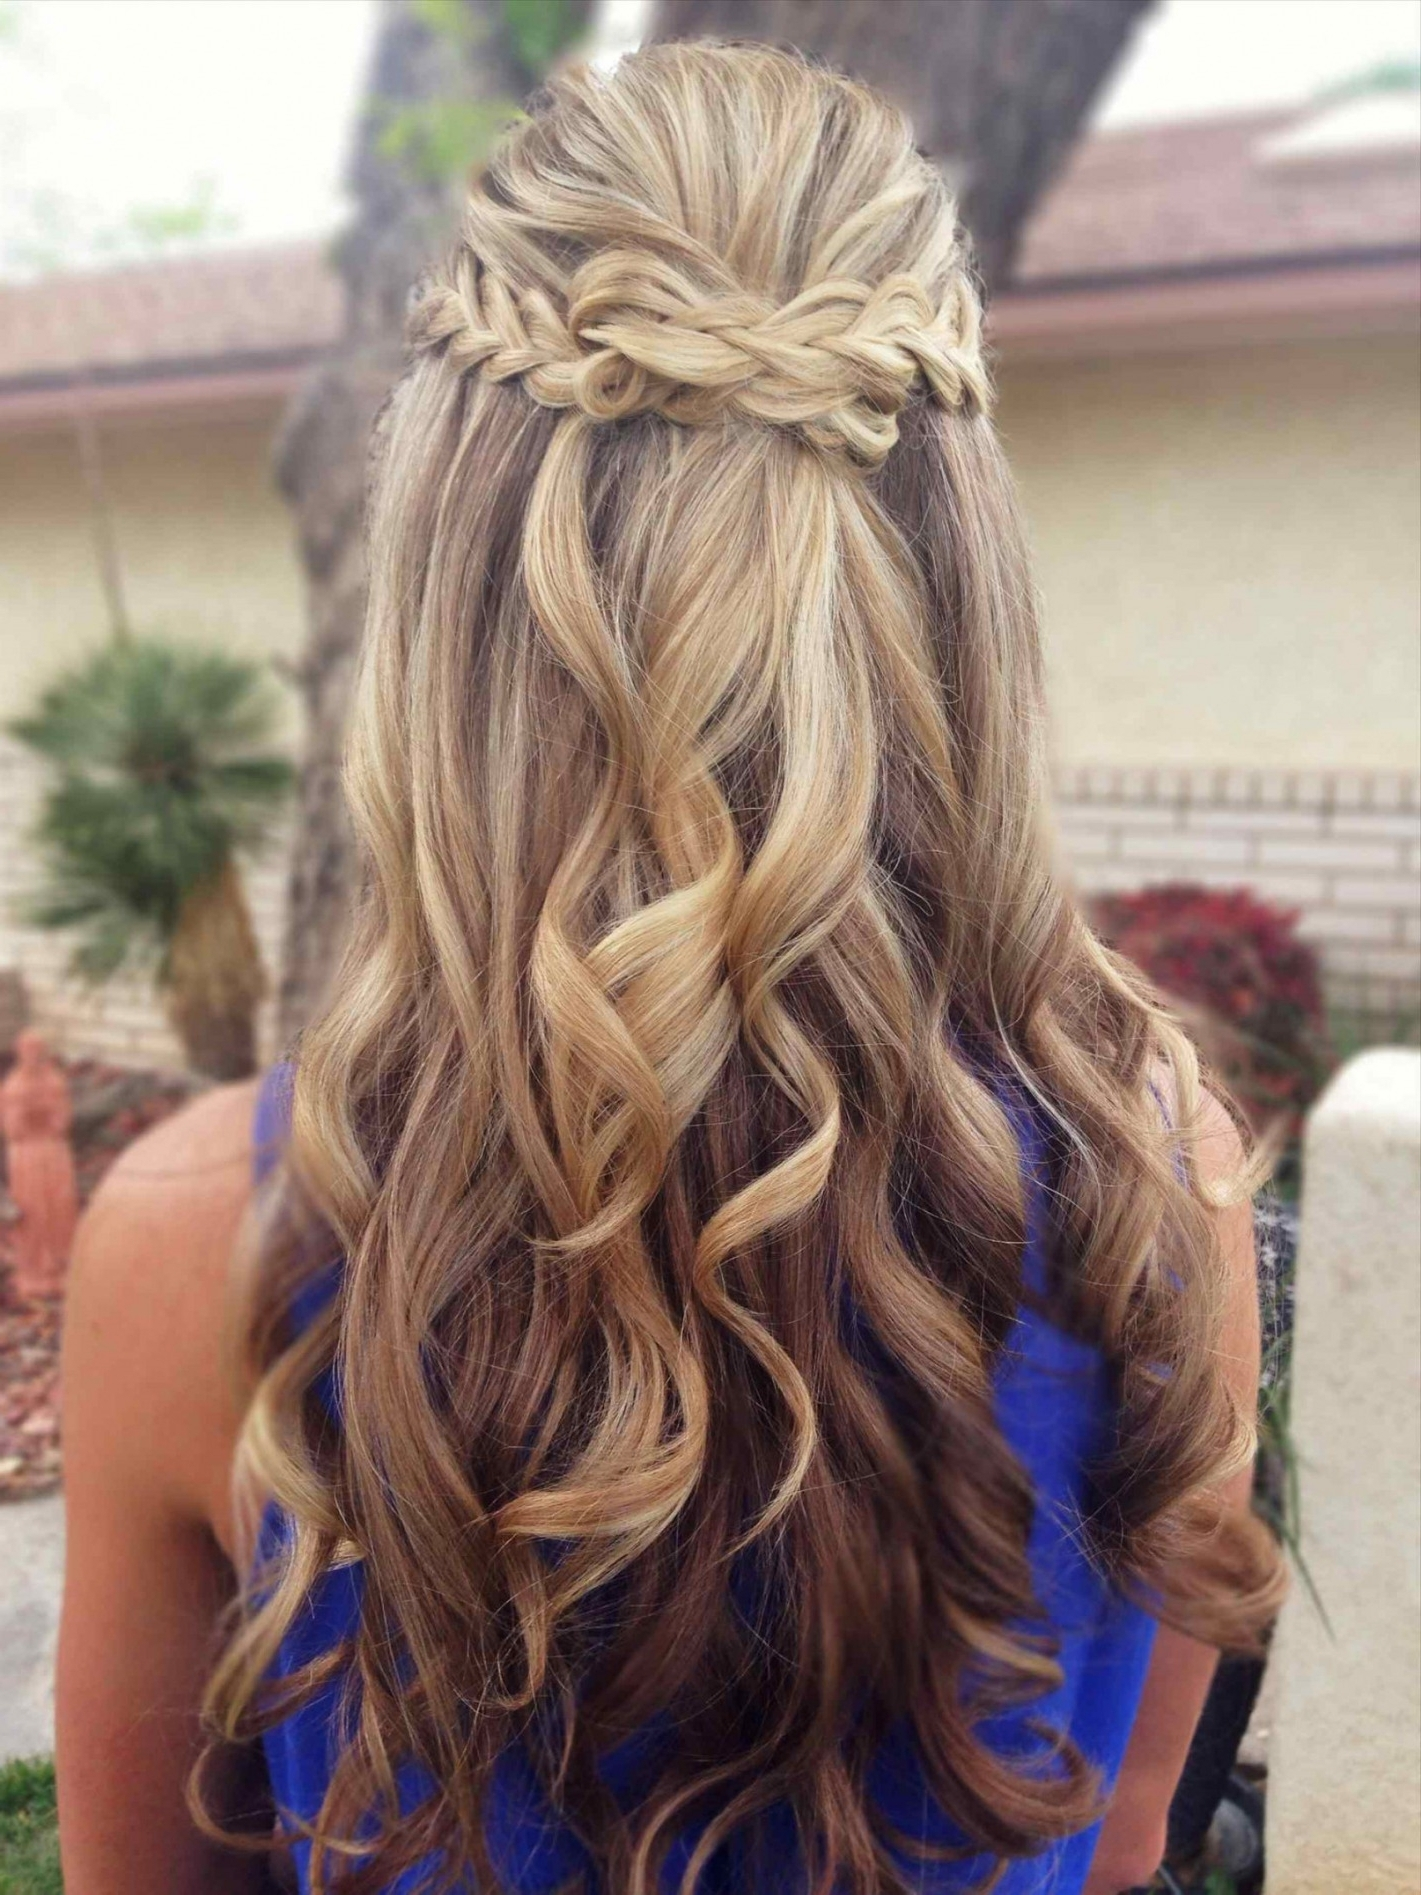 White Girls Braided Hairstyles (View 15 of 15)